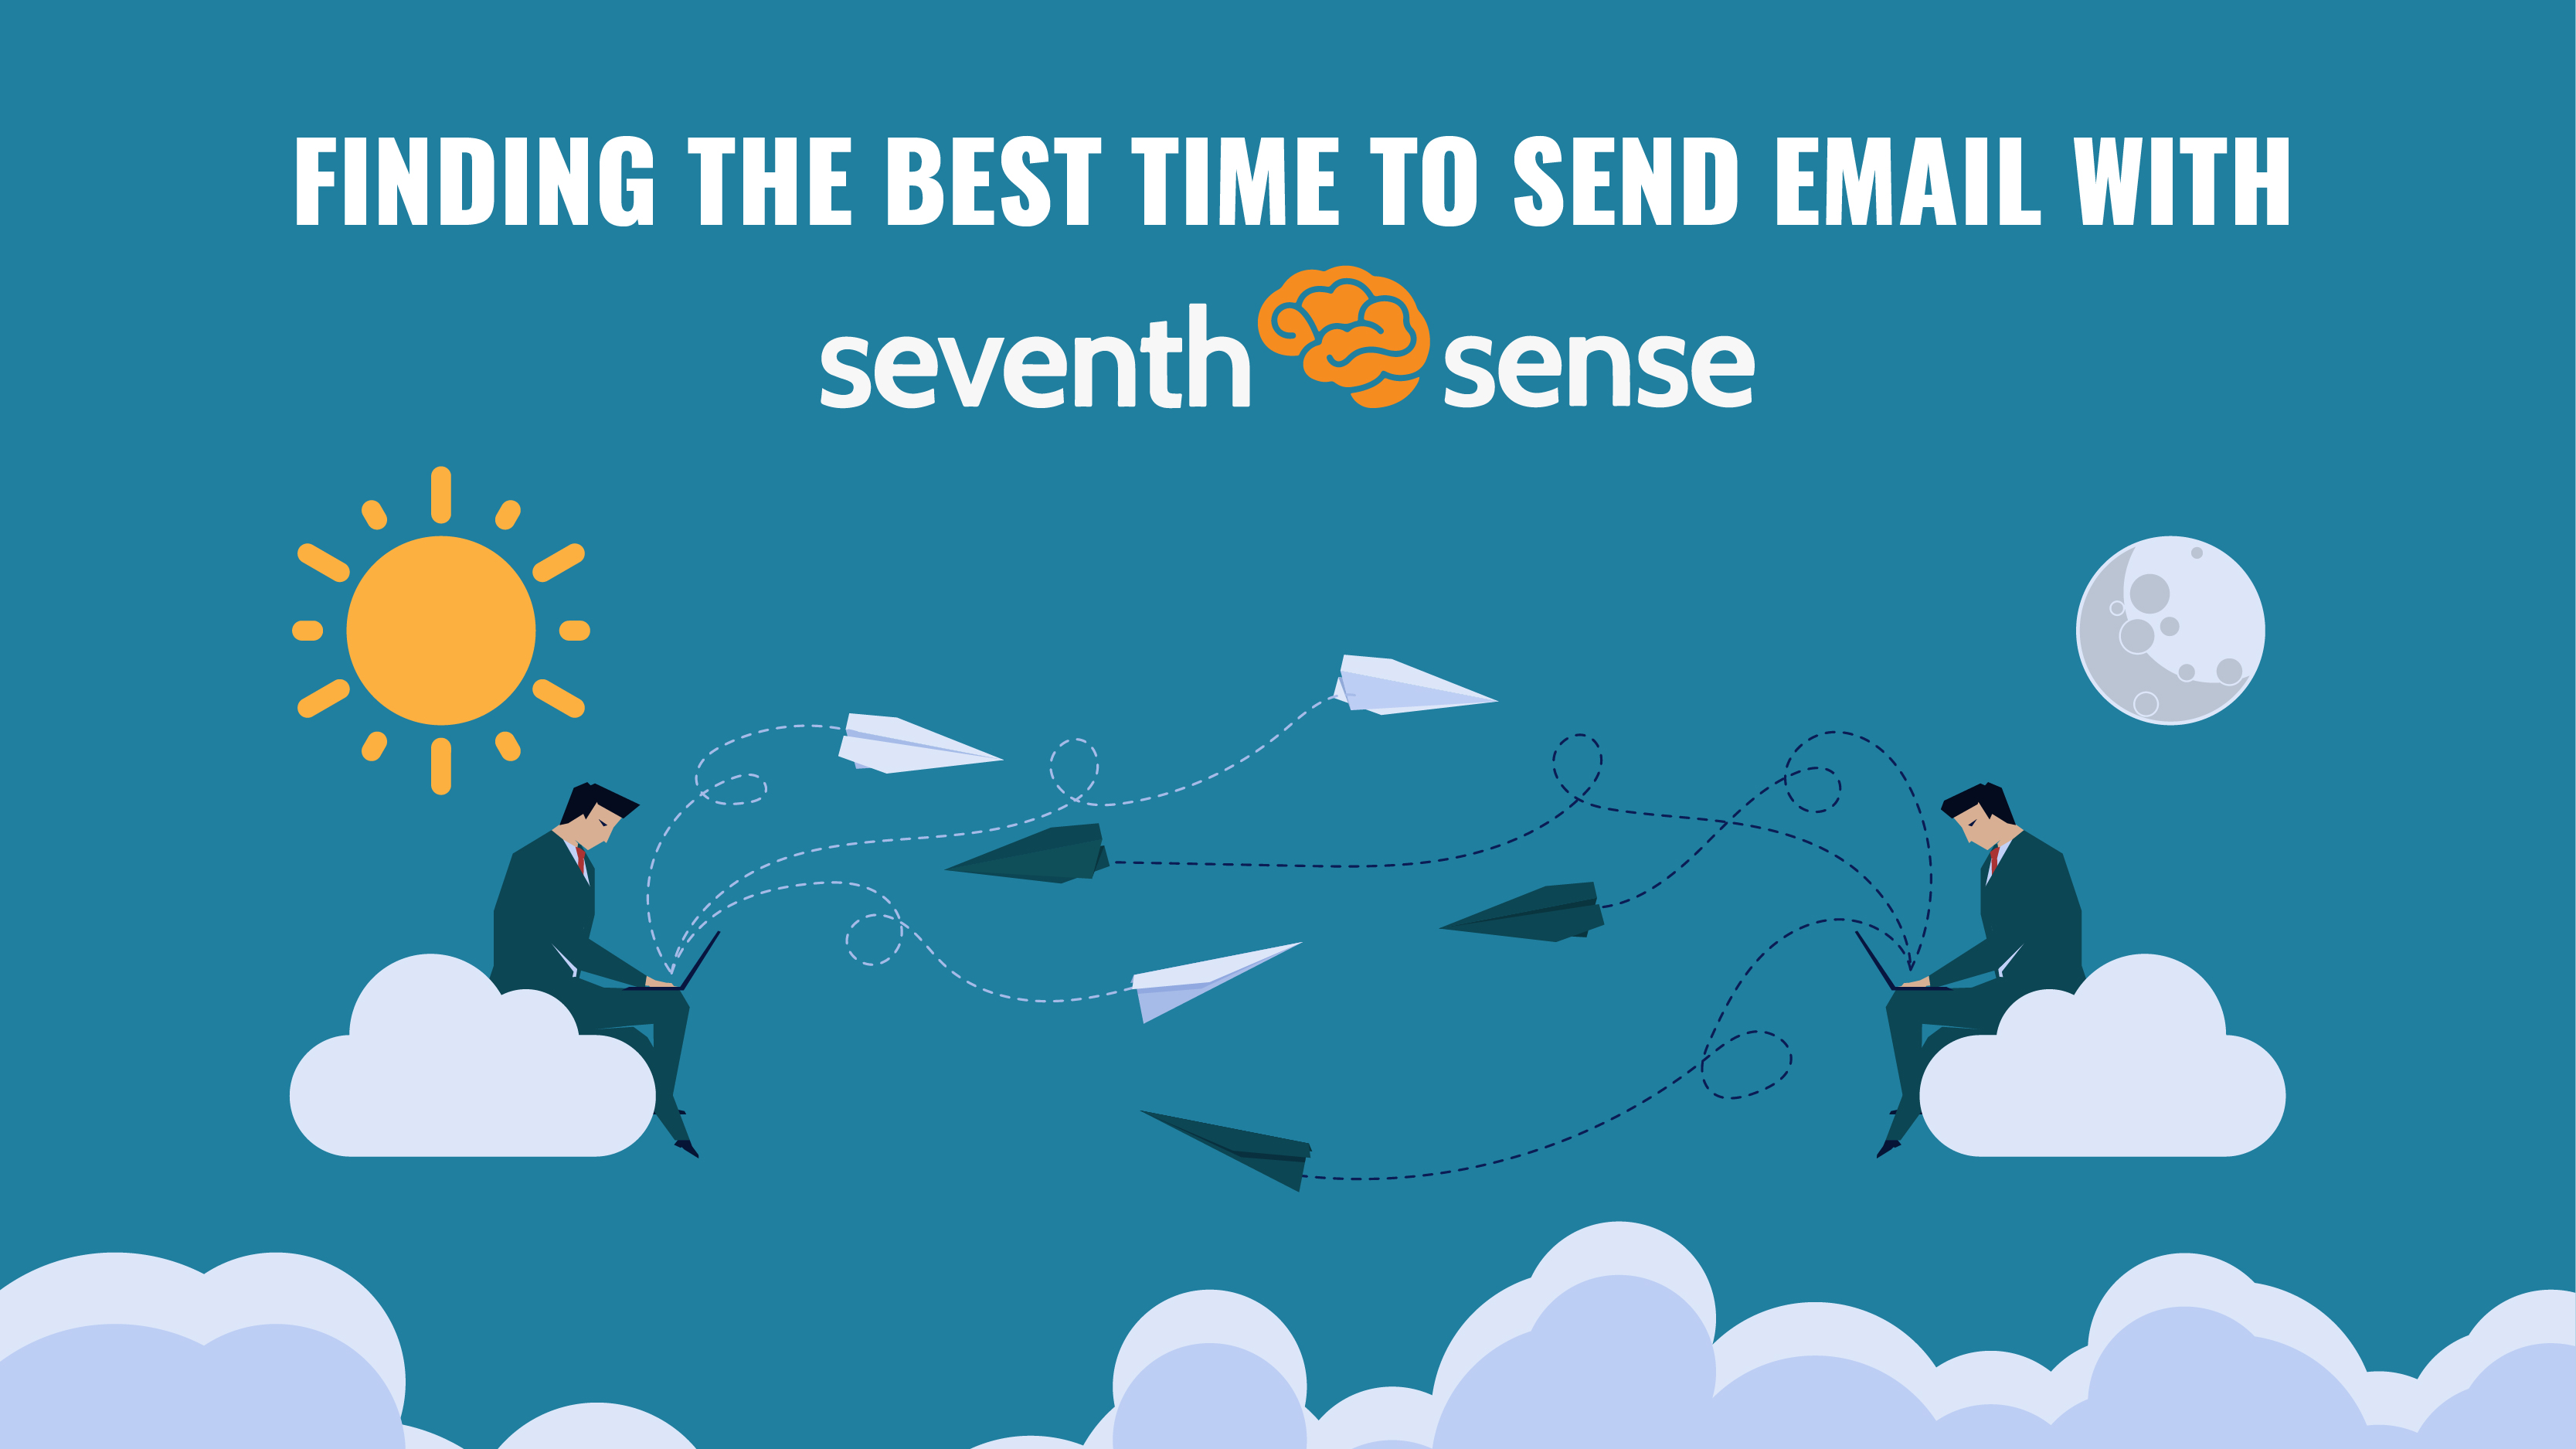 Finding the best time to send email with Seventh Sense